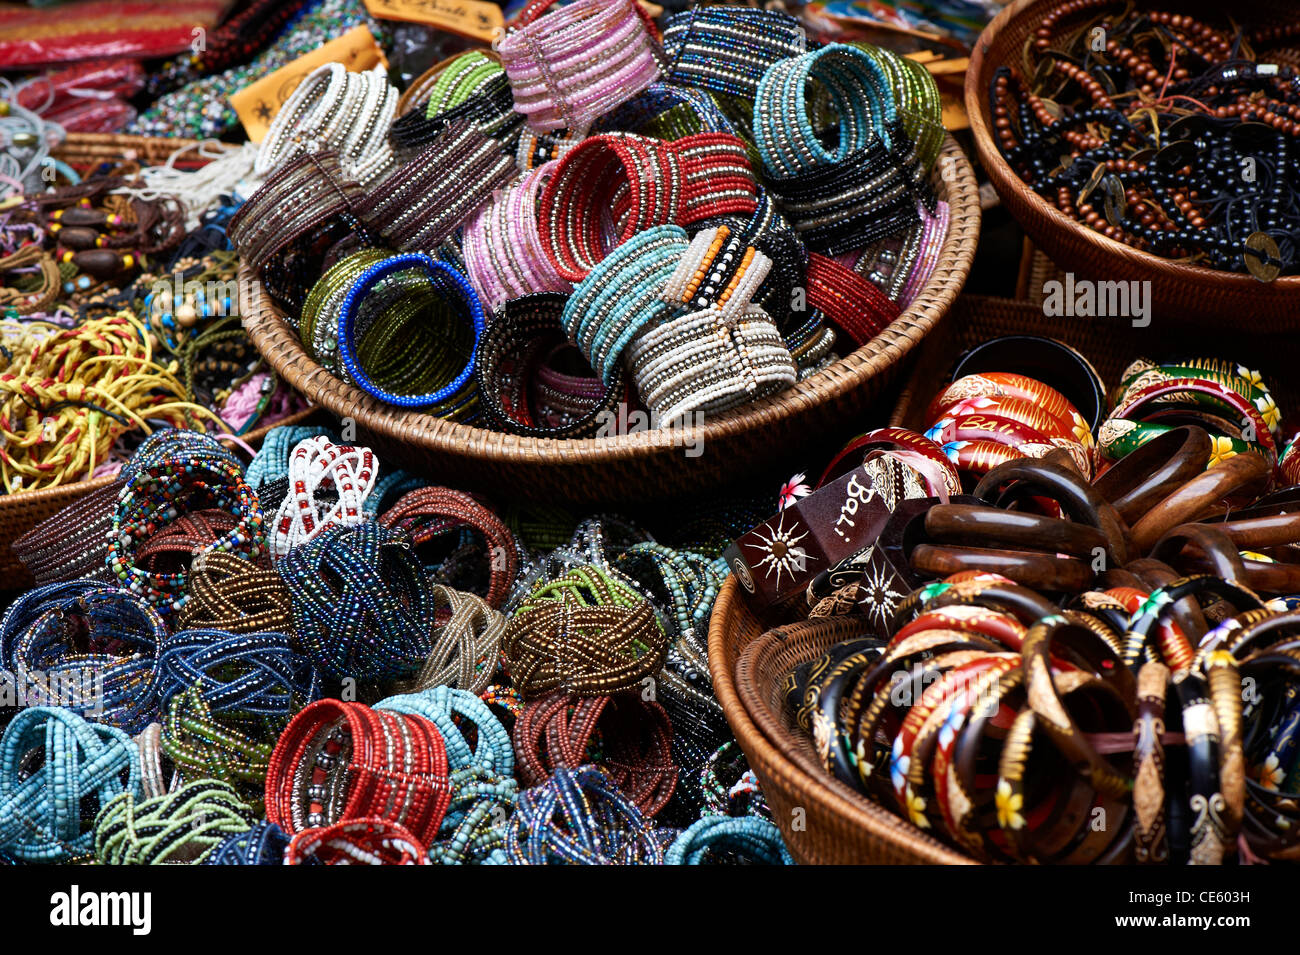 Bangles at Ubud Markets, Bali Indonesia - Stock Image